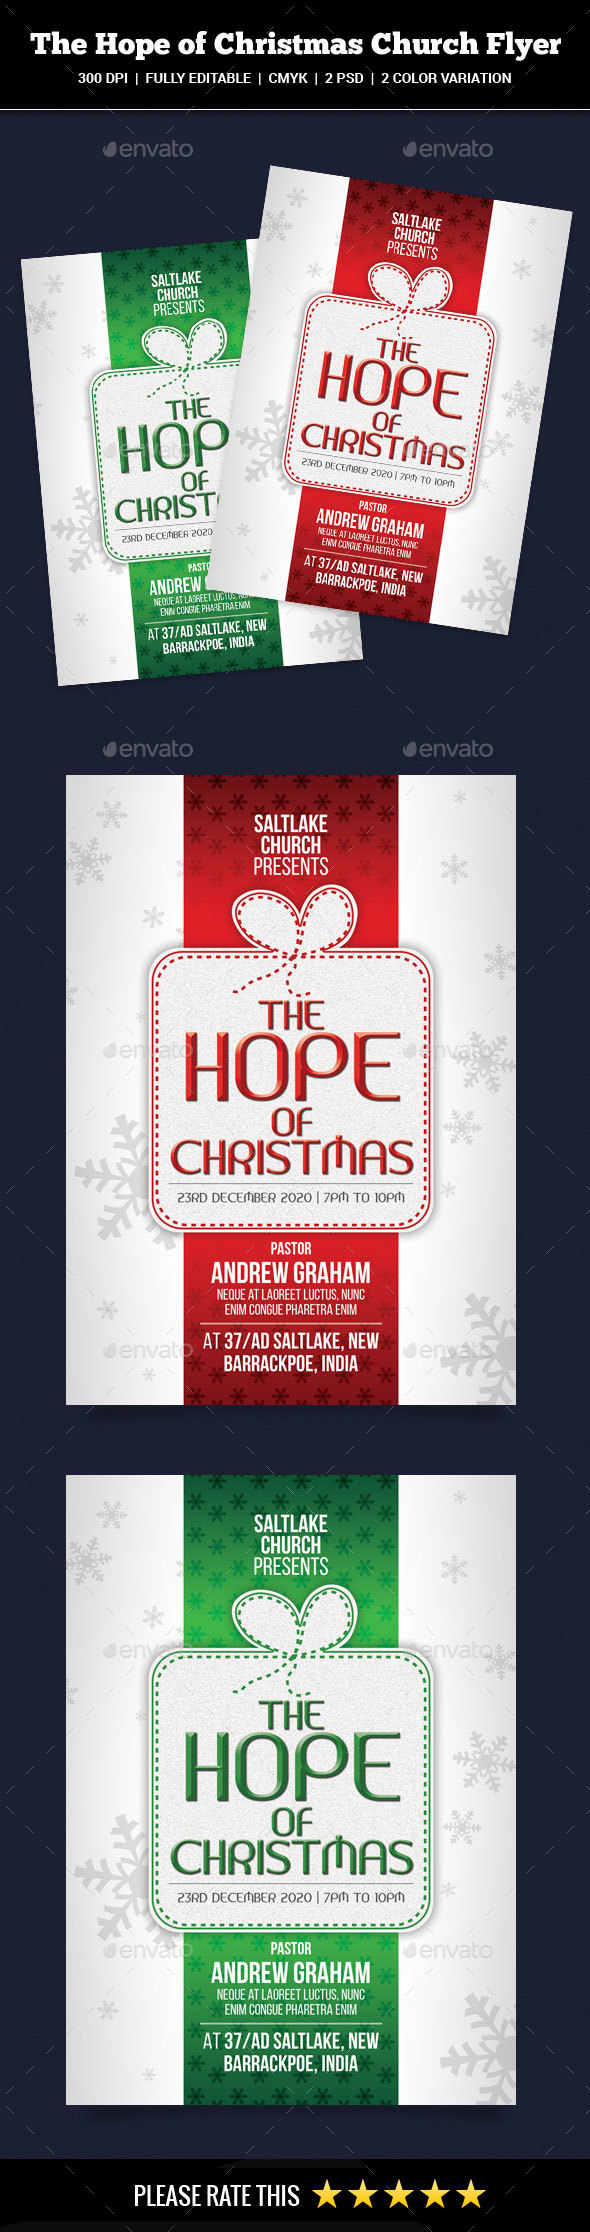 The Hope of Christmas Church Flyer - Church Flyers